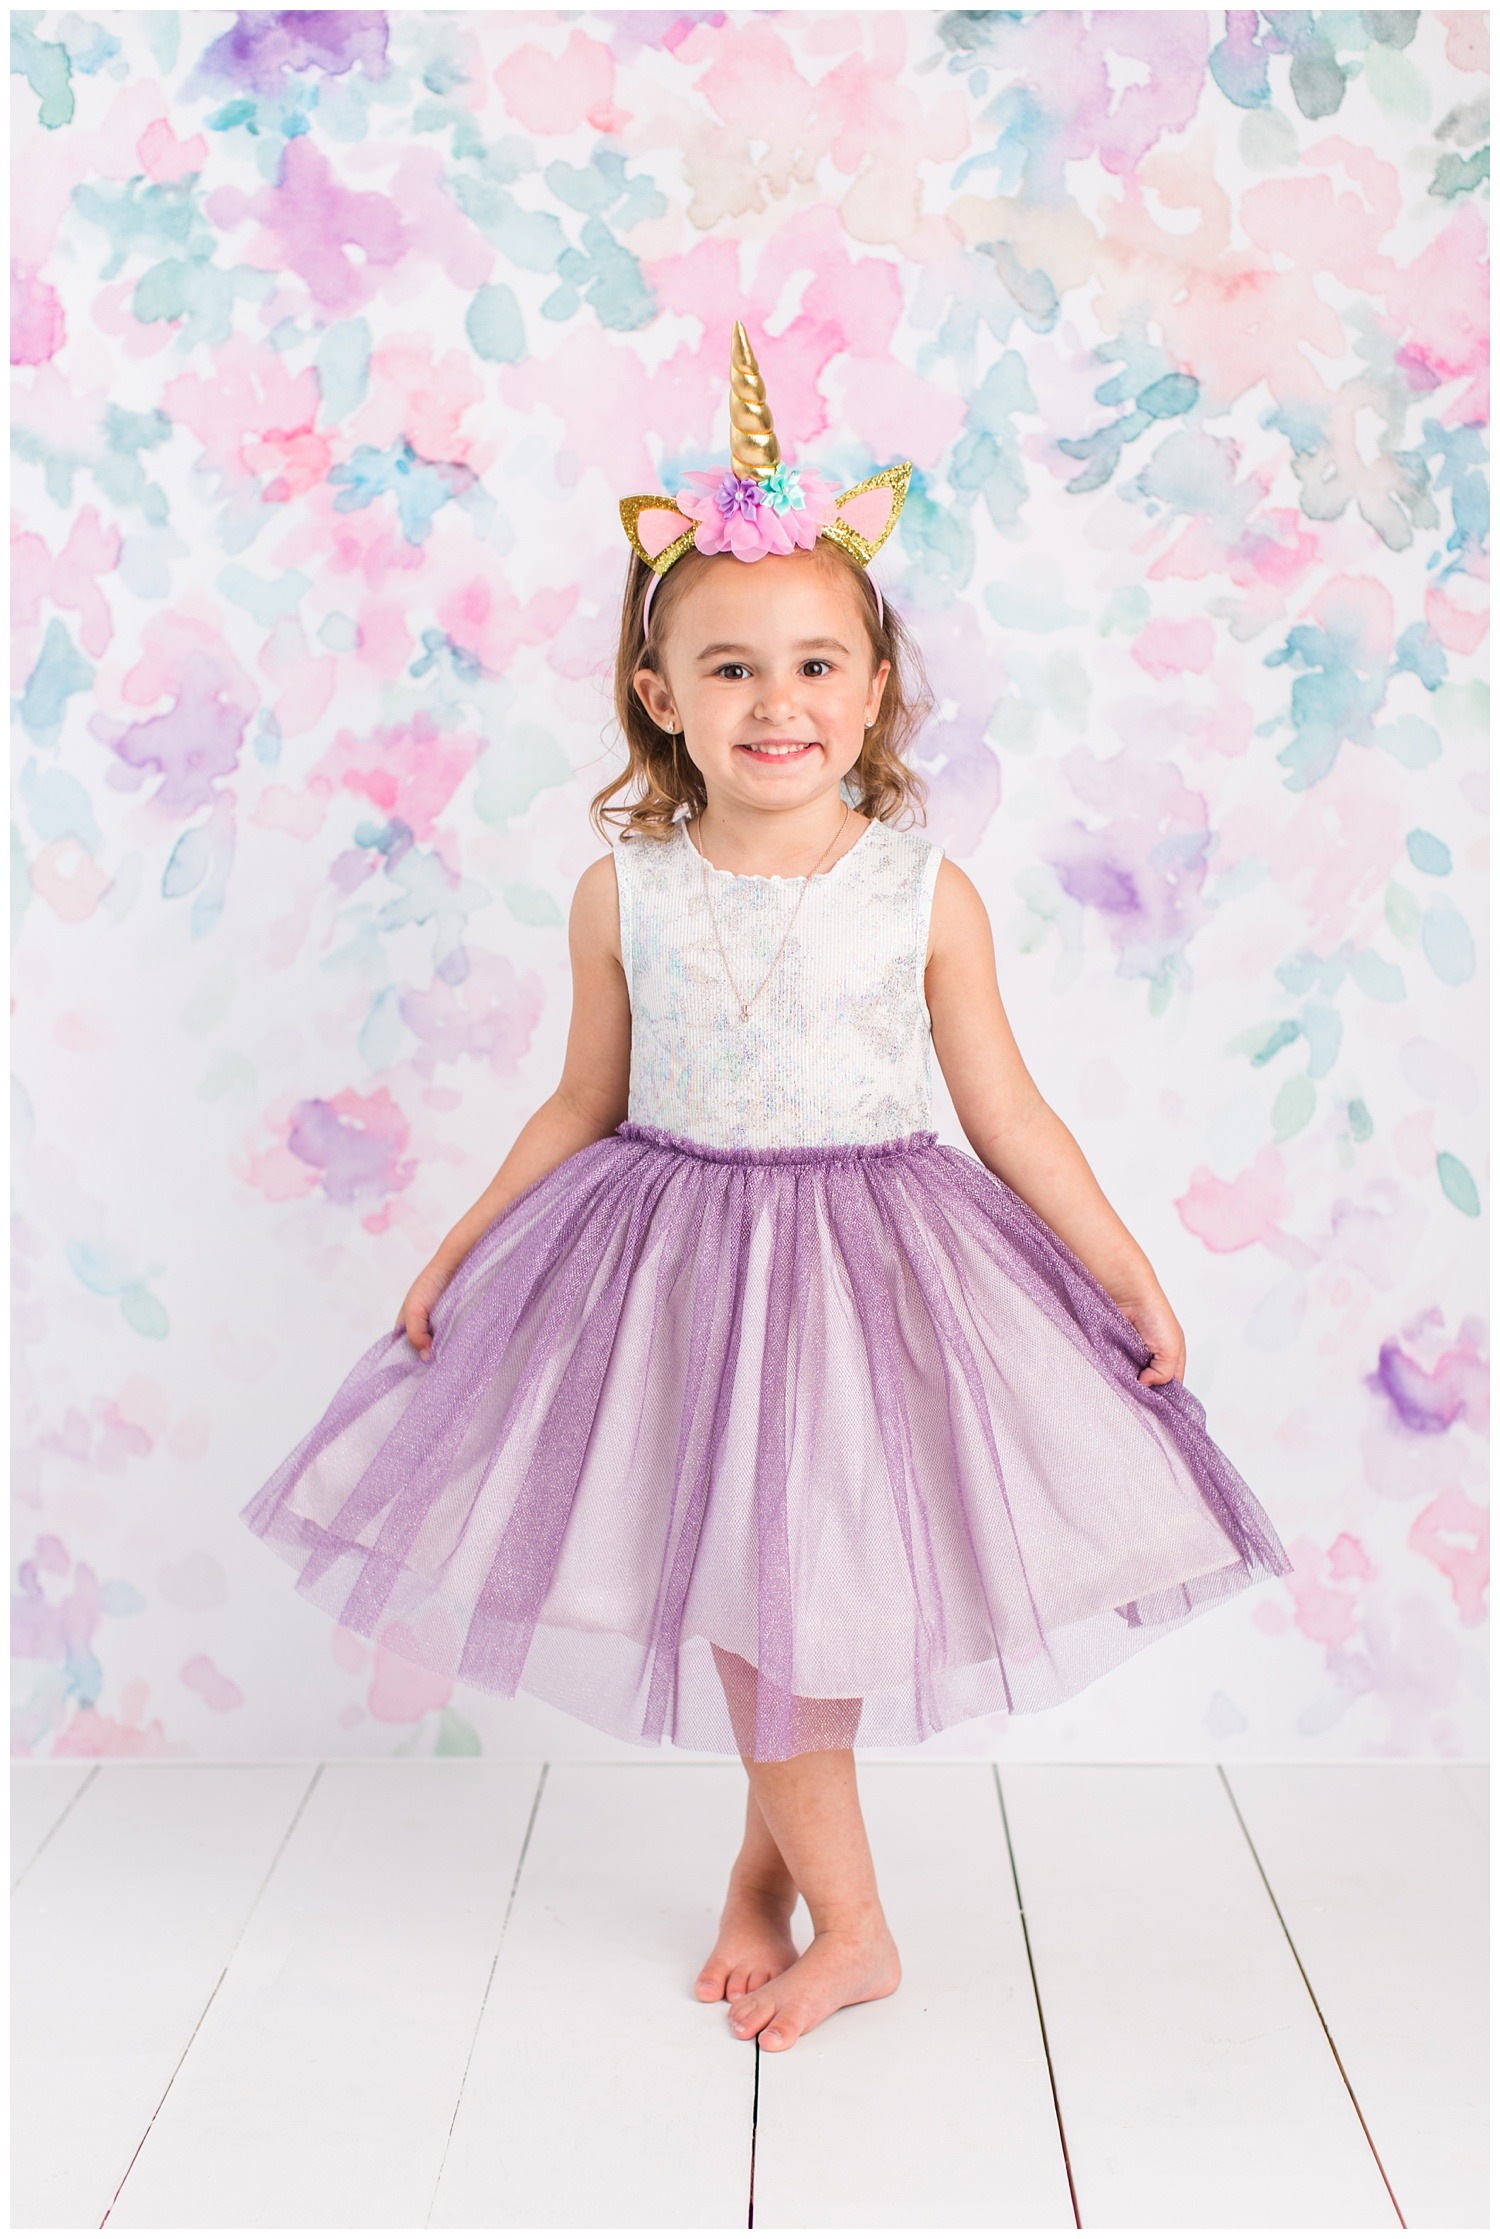 4 year old Sadie curtsey wearing a white and purple sparkling dress and unicorn headband.